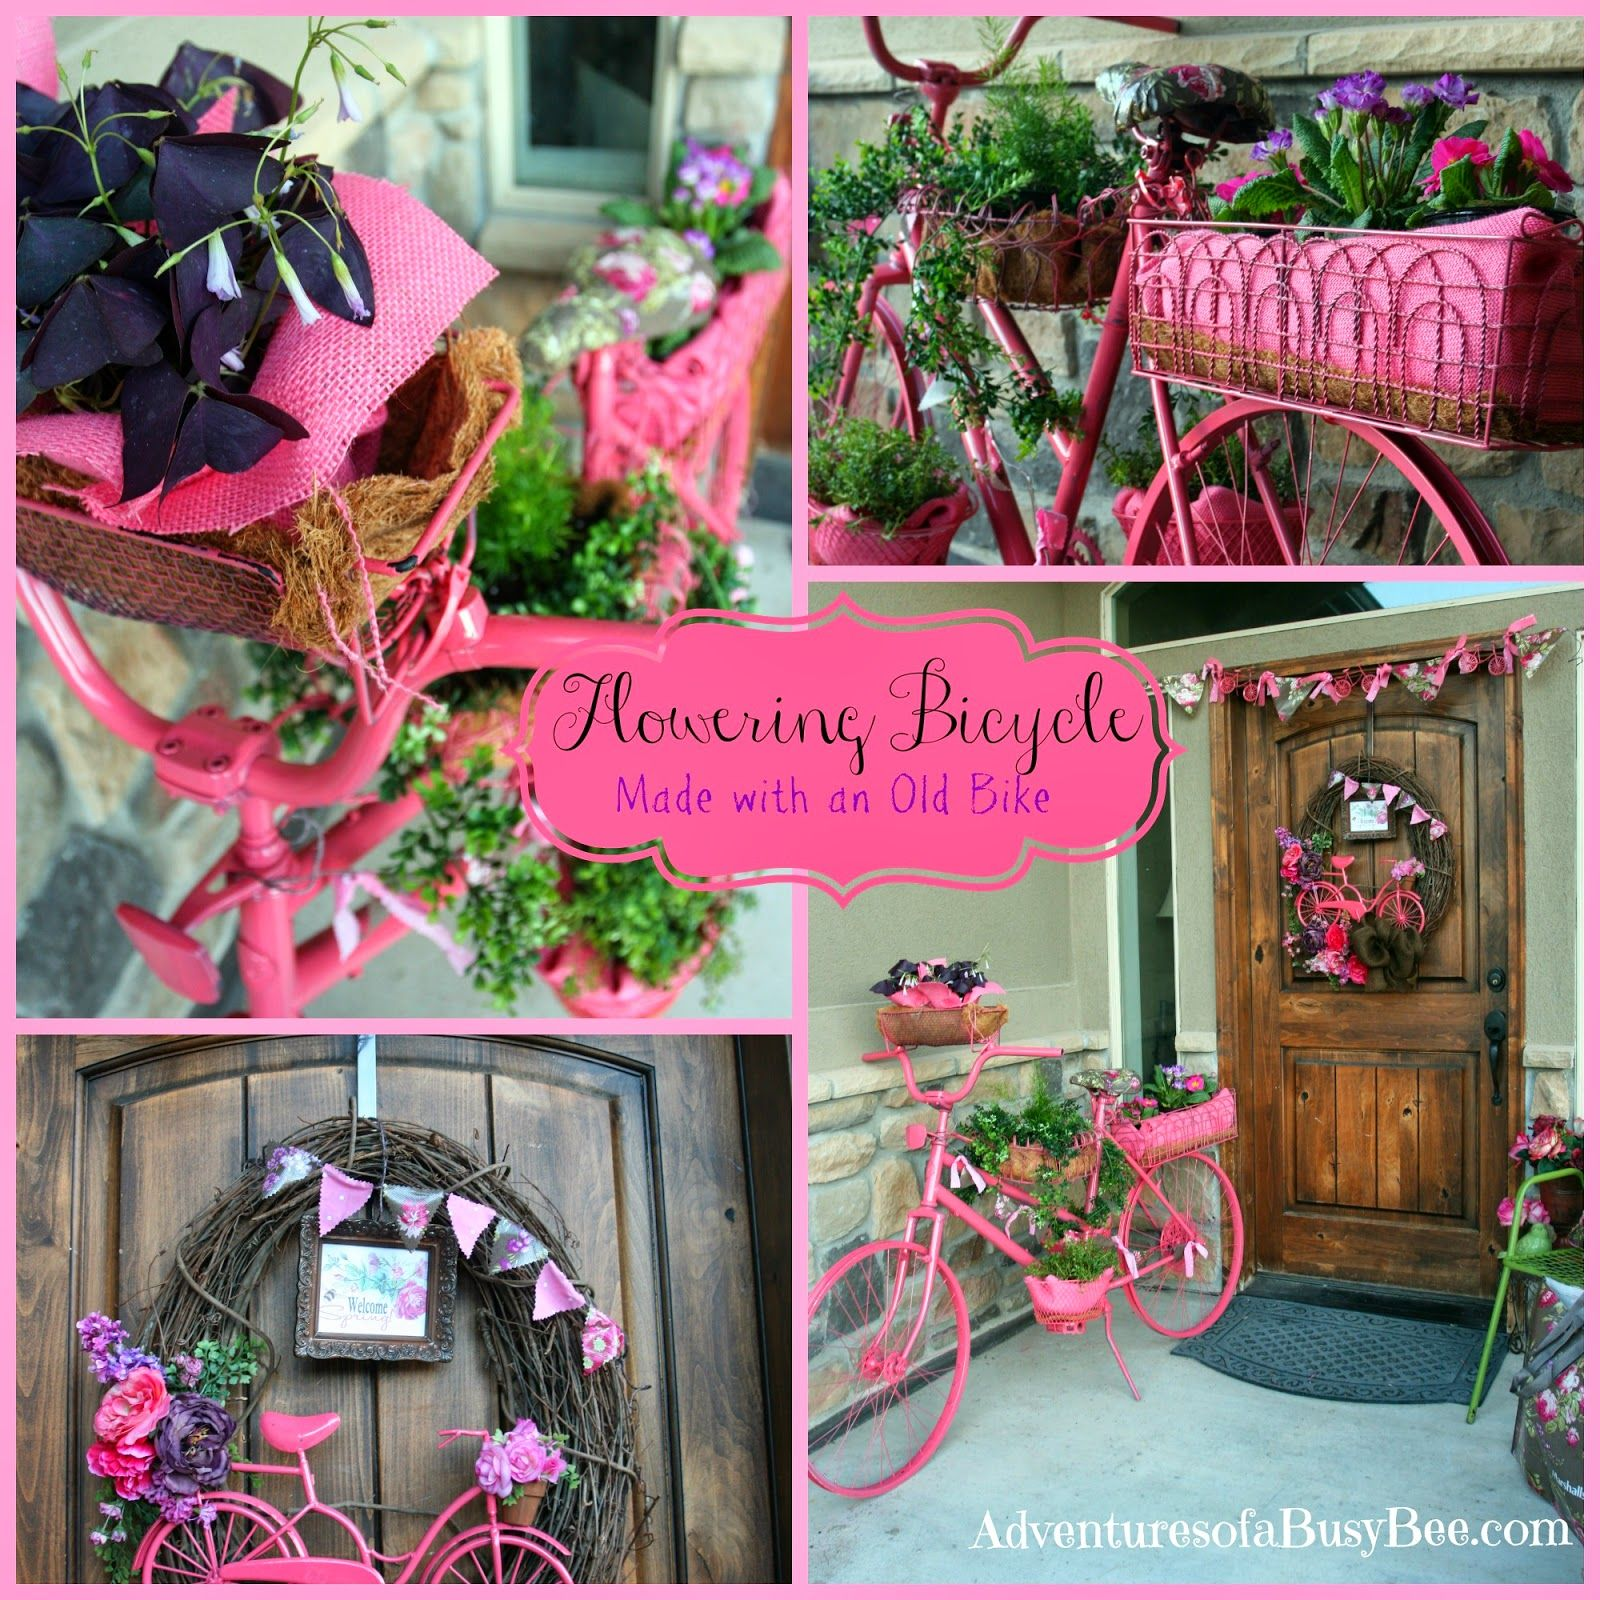 Flowering Garden Bike And Porch Design Made With An Old